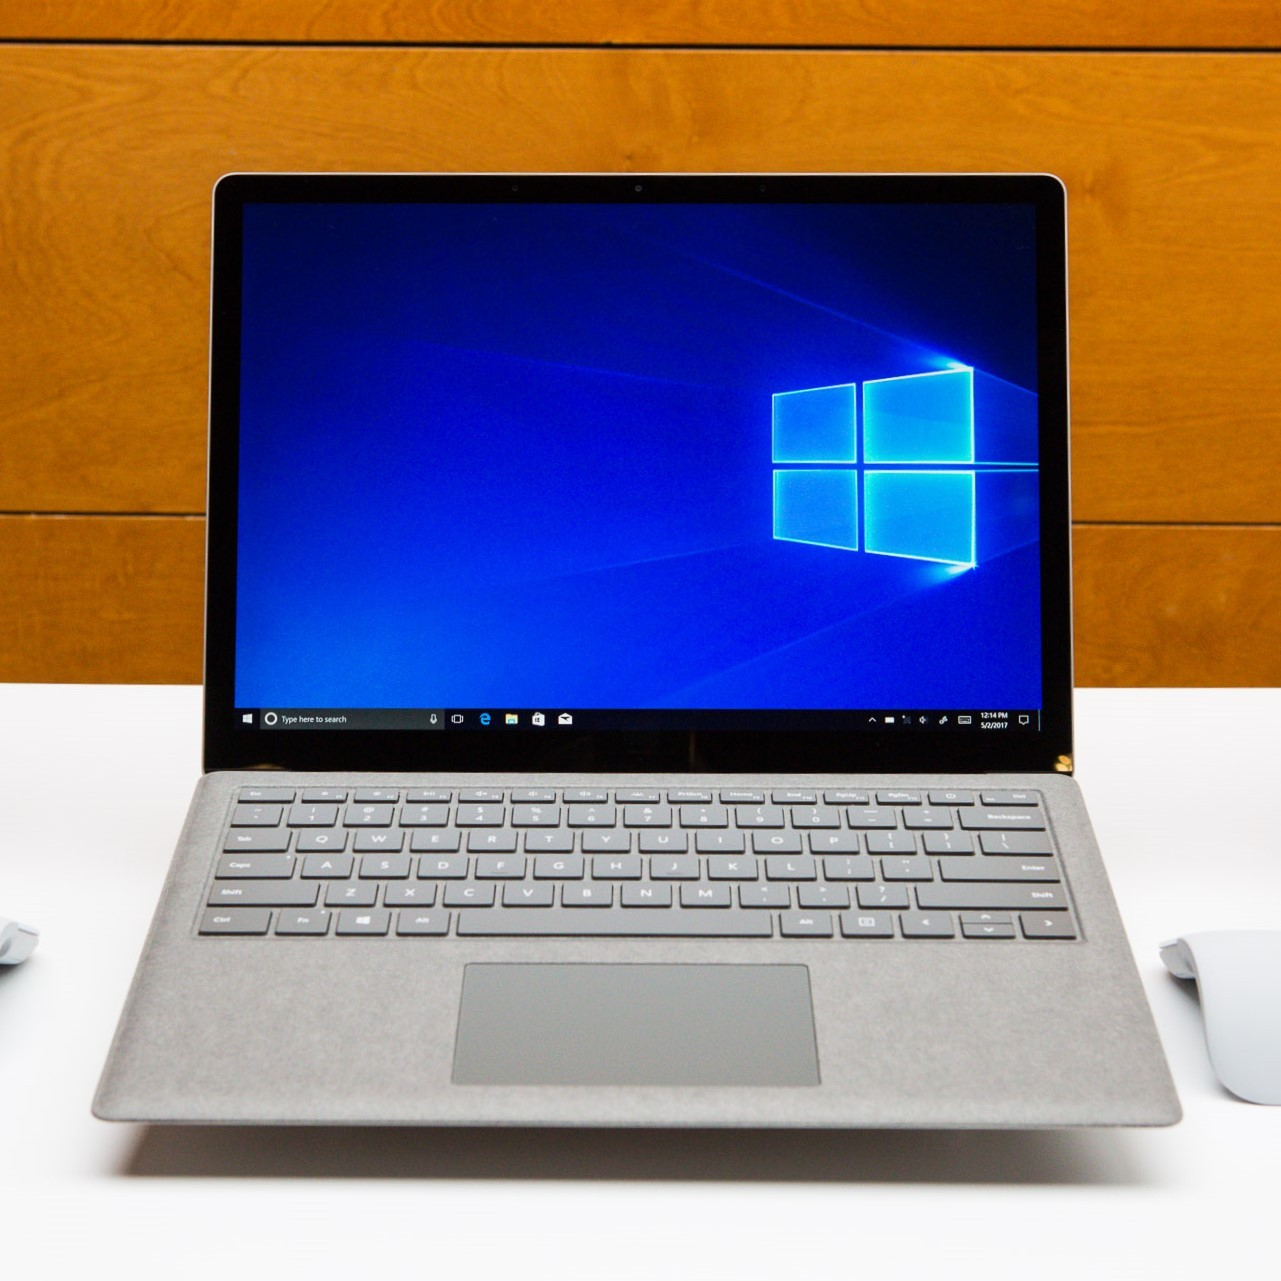 Laptop Günstig Microsoft Surface Laptop Review Worth The Wait The Verge